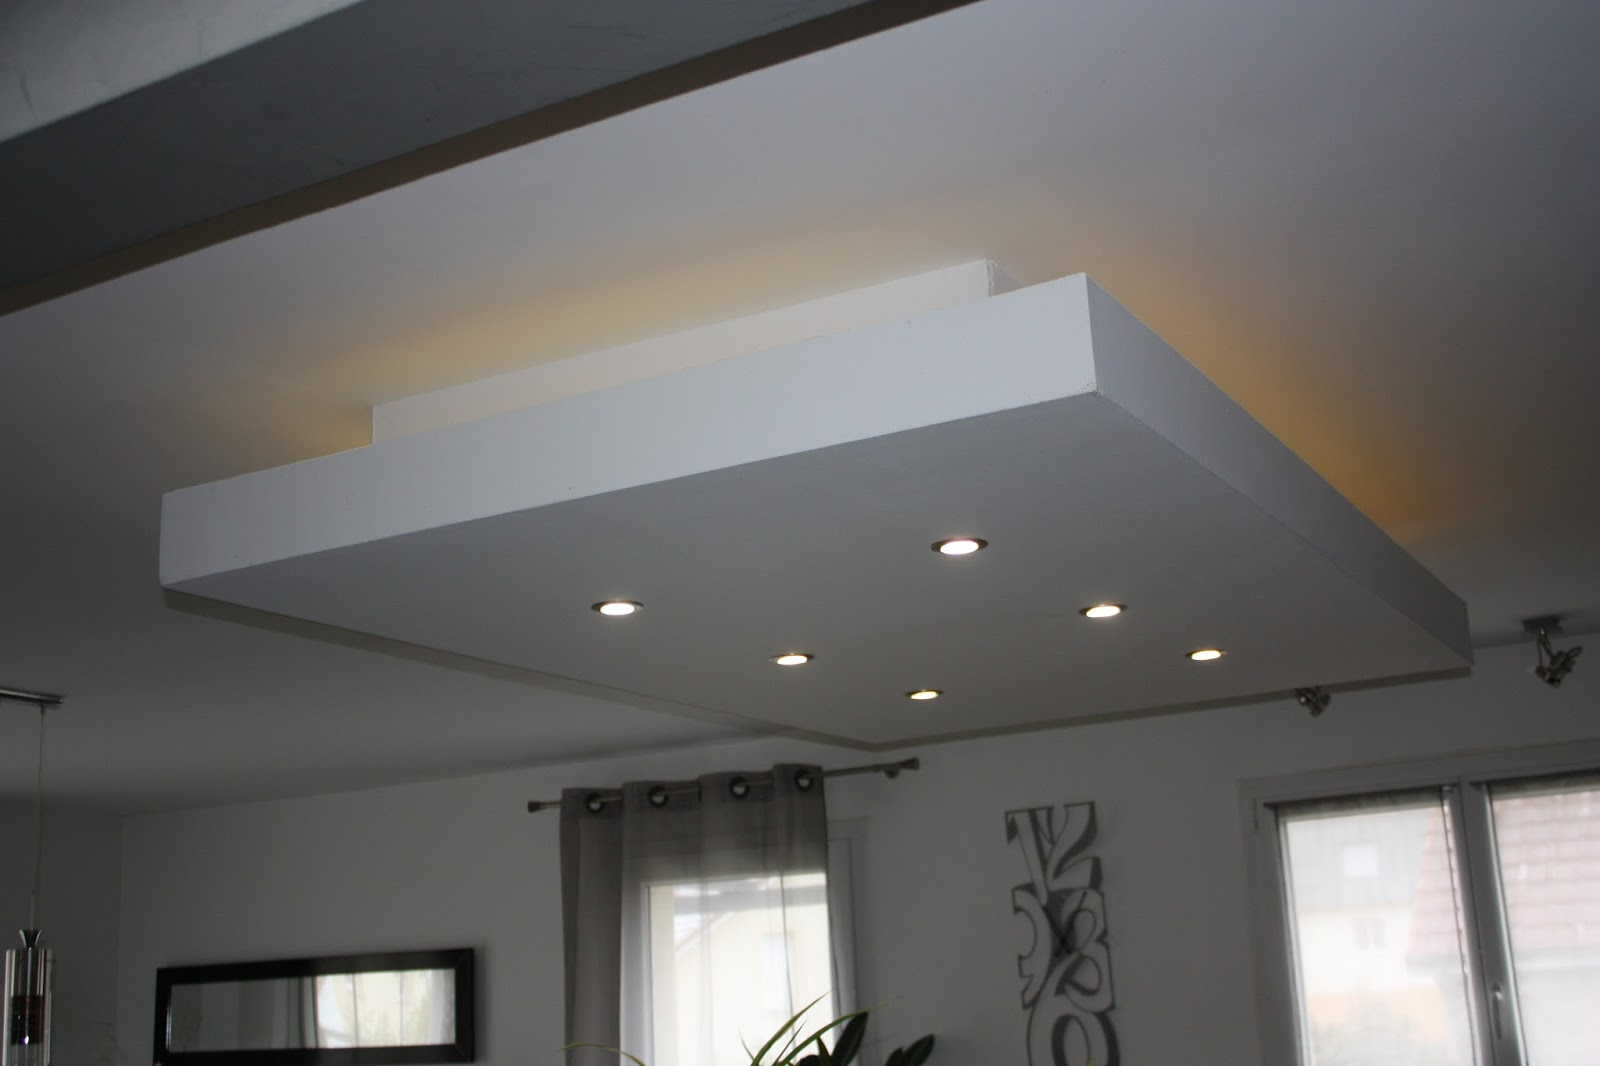 Bricolage de l 39 id e la r alisation plafond descendu for Eclairage led interieur plafond